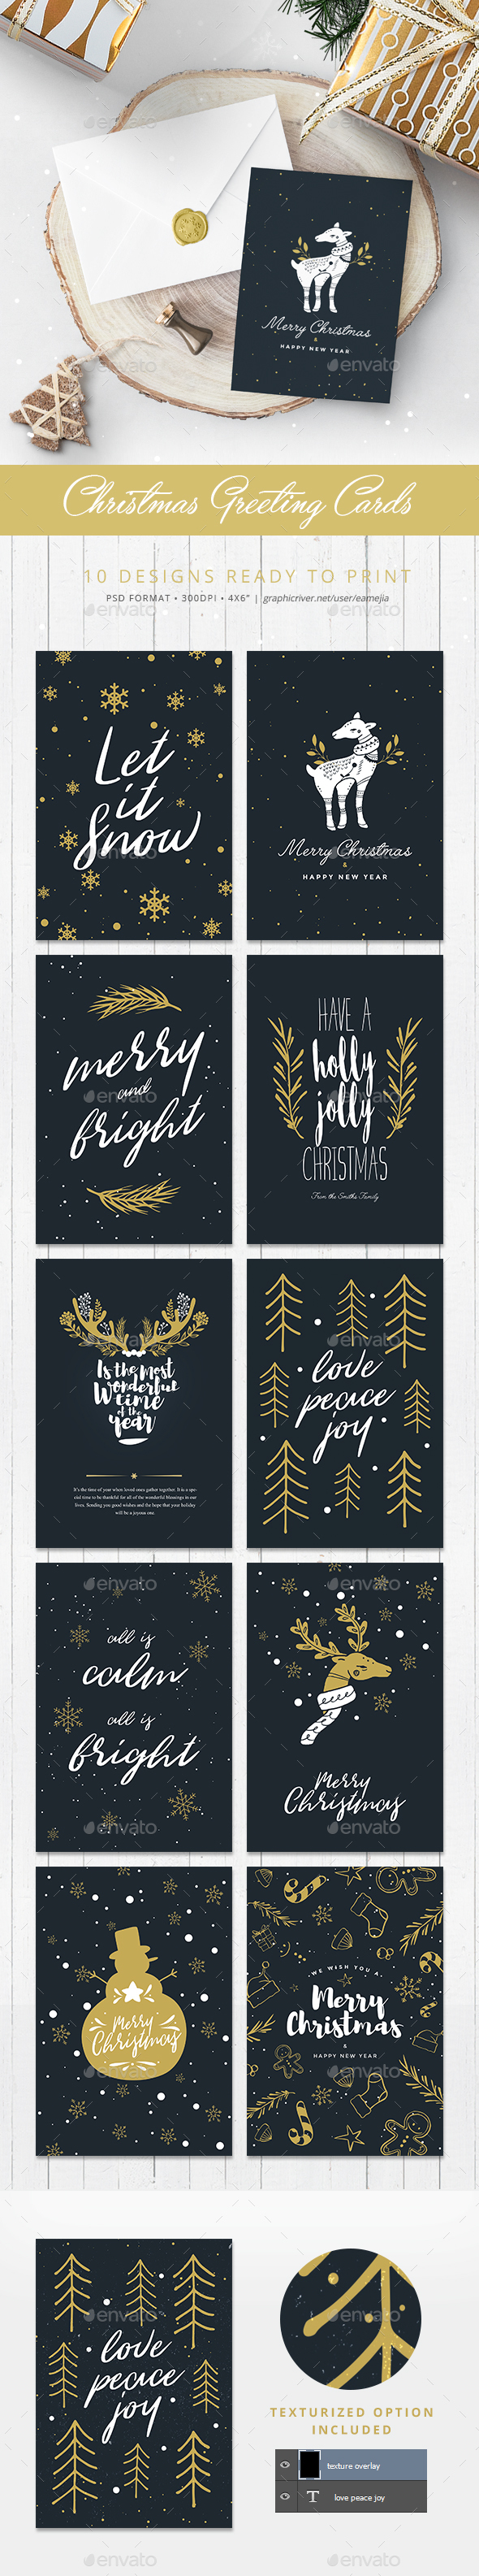 GraphicRiver 10 Christmas Greetings Cards 20988935